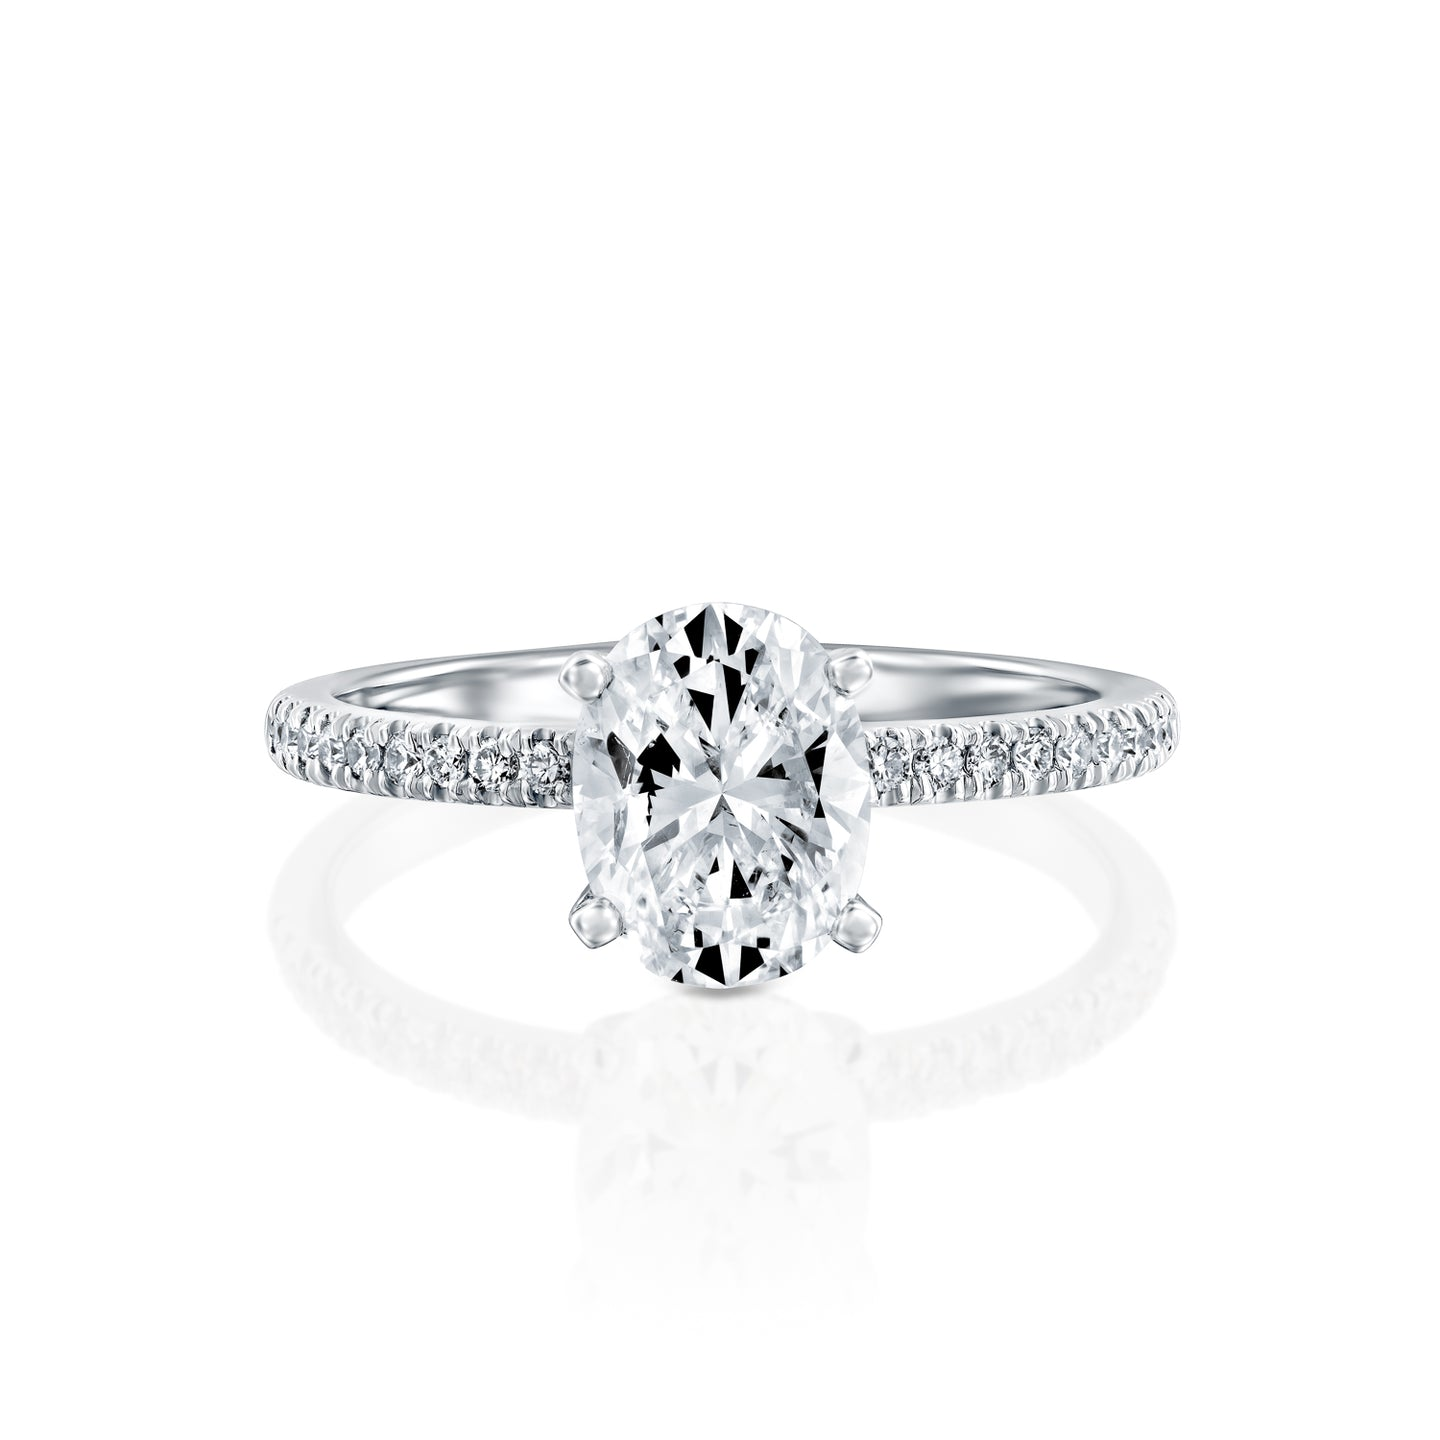 1 Carat 14K White Gold Moissanite & Diamonds